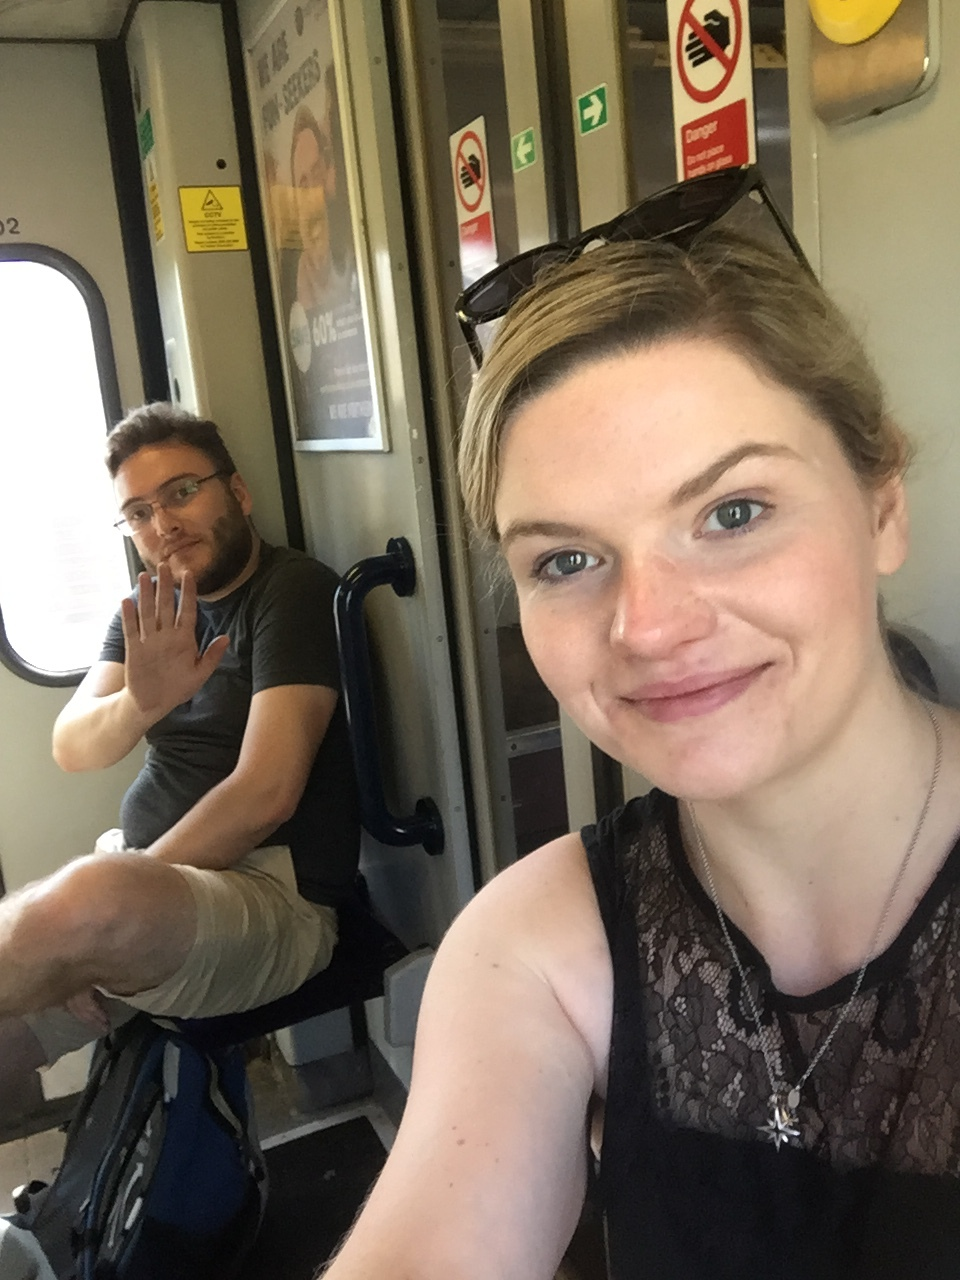 Hot and sweaty train faces